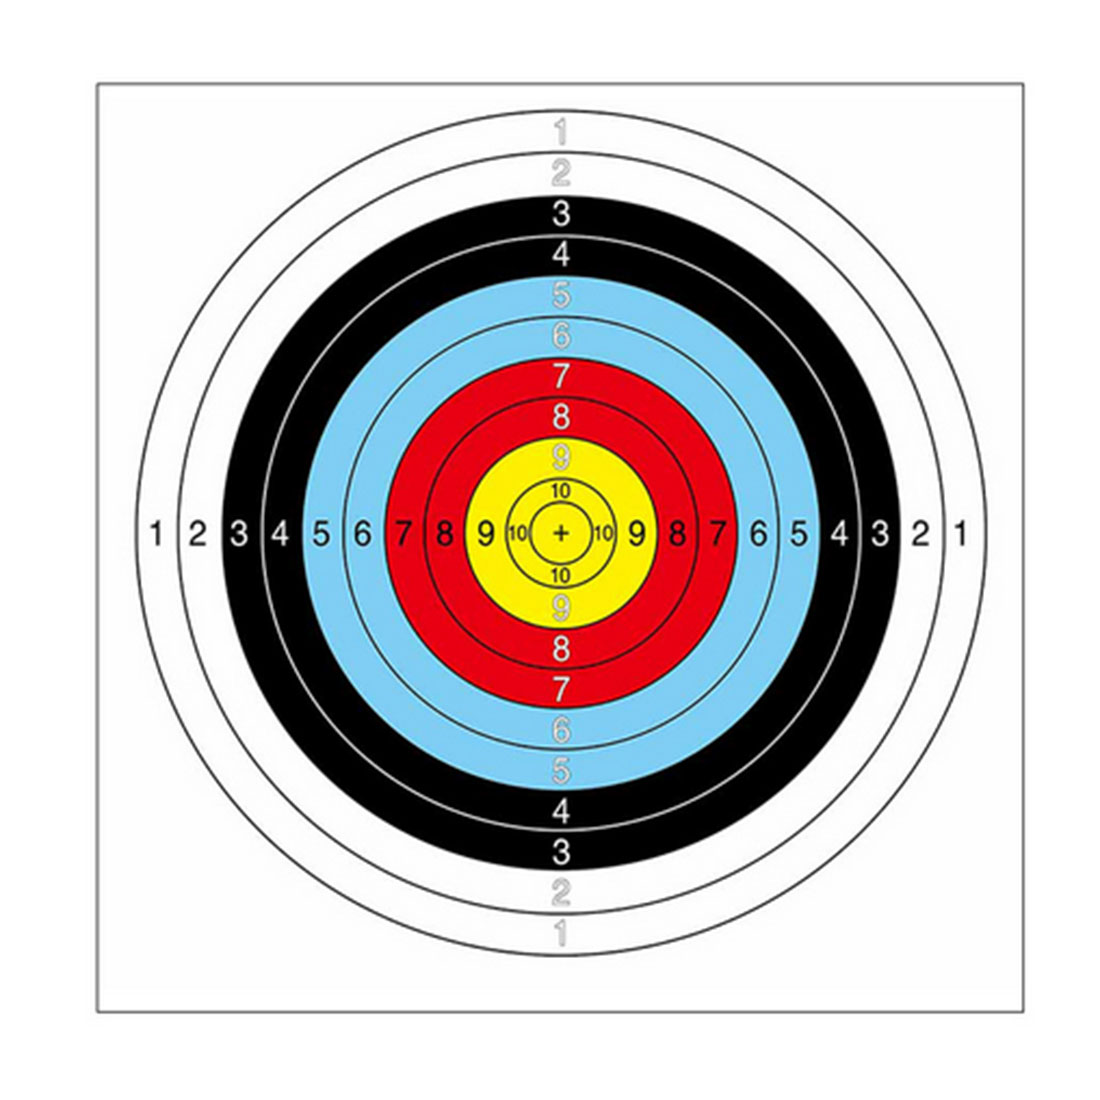 1000Pcs/set 40*40cm Semiring Circular Target Sheet for Outdoor Shooting Practice Children Sports Toys